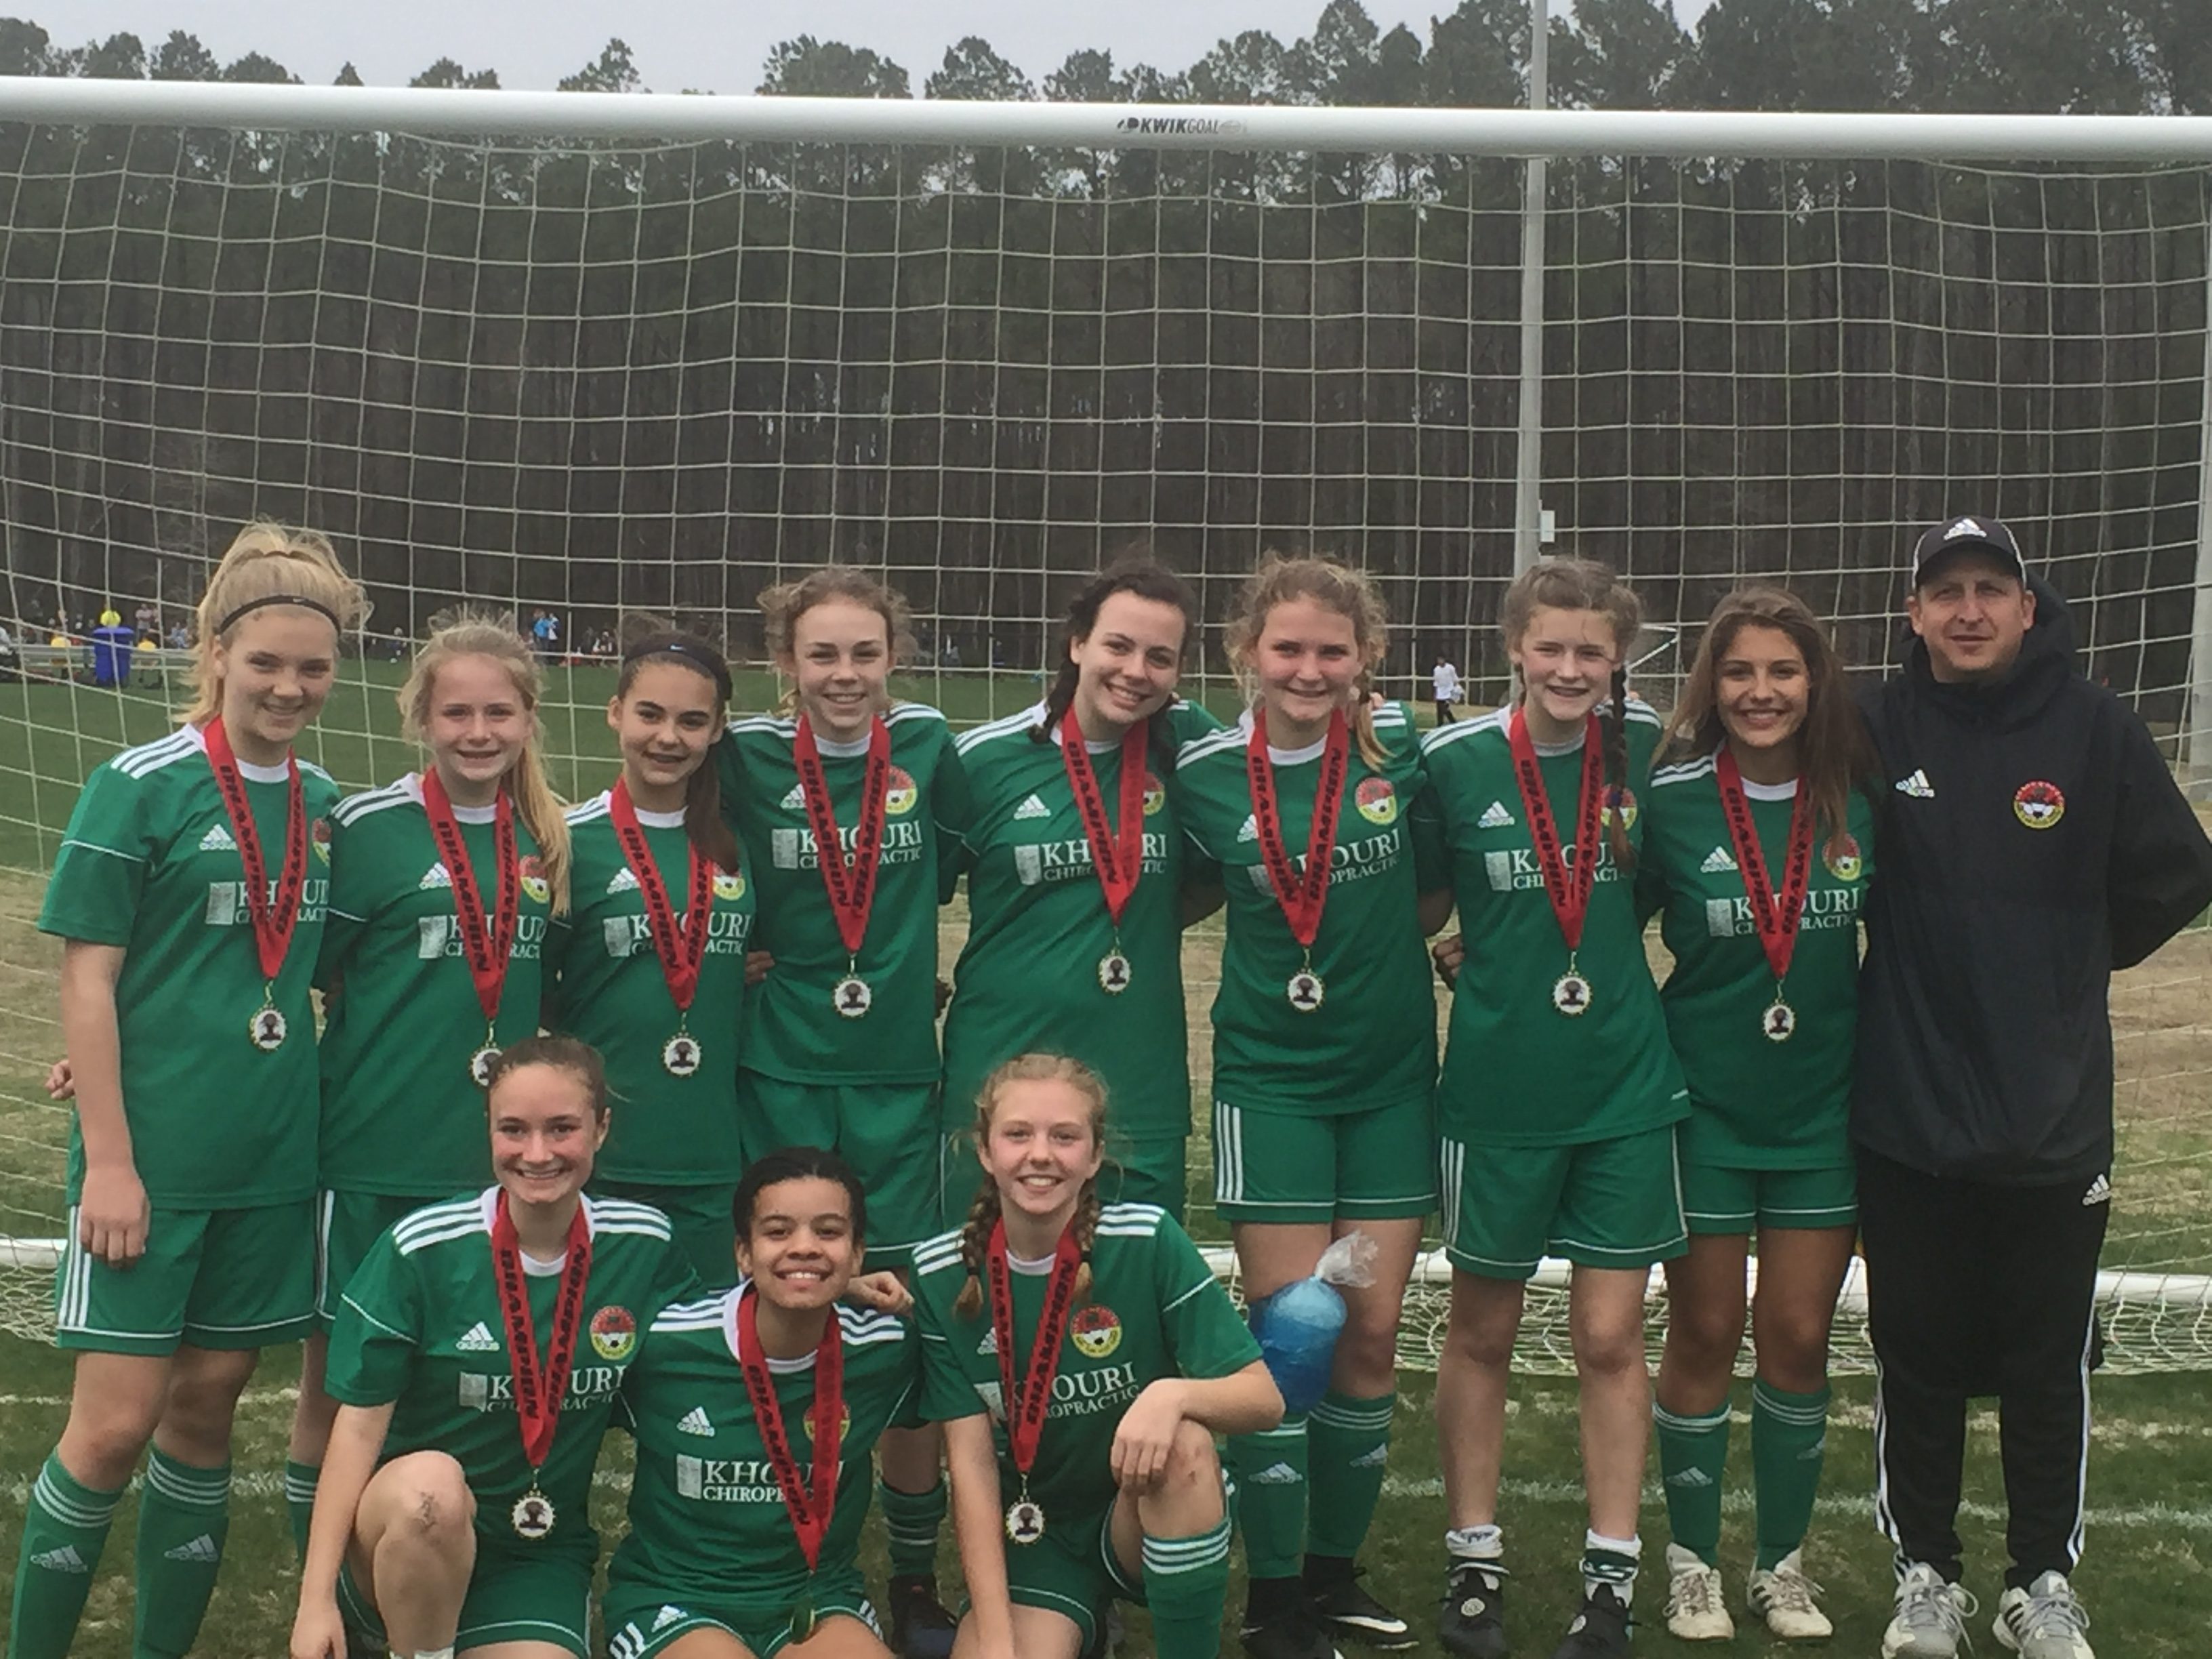 DISA's U14 Gators! Standing (L to R): Grace Herman, Emily Scarth, Makayla Brunetti, Meredith McDonald, Cecilia Ollis, Jen Slozak, Emma Darnell, Stephanie Kirk and Coach Andrew Kirk. Front row (L to R): Morgan Ramsey, Gabby Hylton and Claire Esse. Not pictured are Avery Darr, Morgan Davis and Carly Becvinovski.